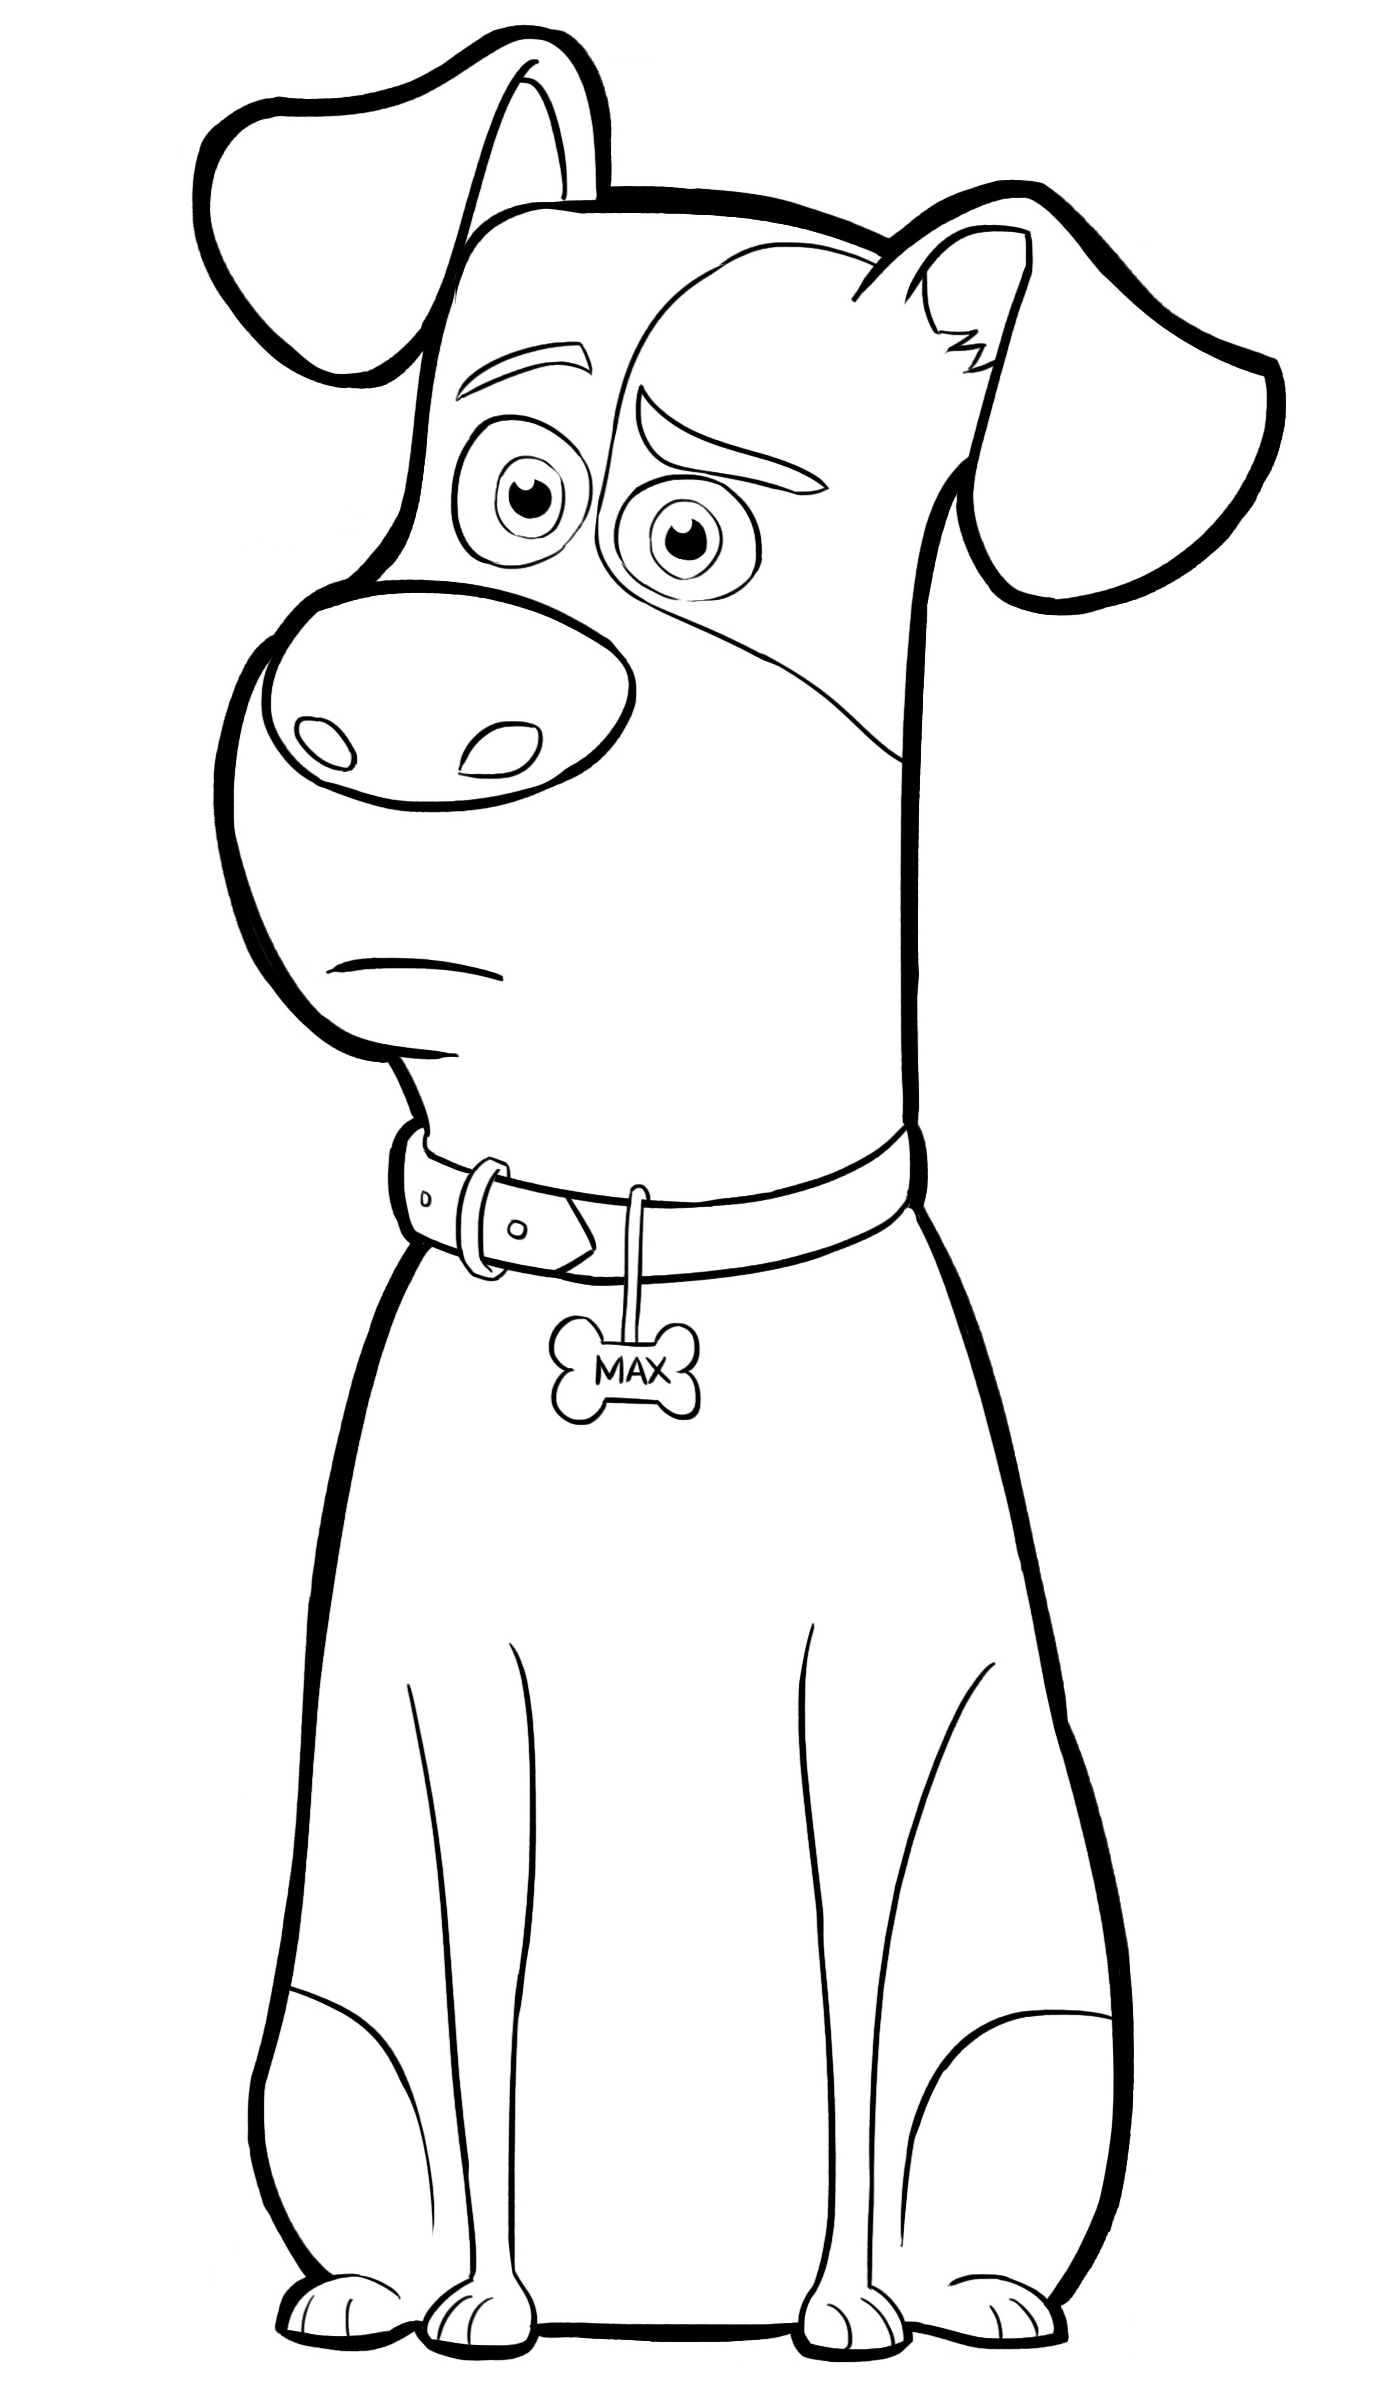 1383x2406 Max From The Secret Life Of Pets Coloring Page